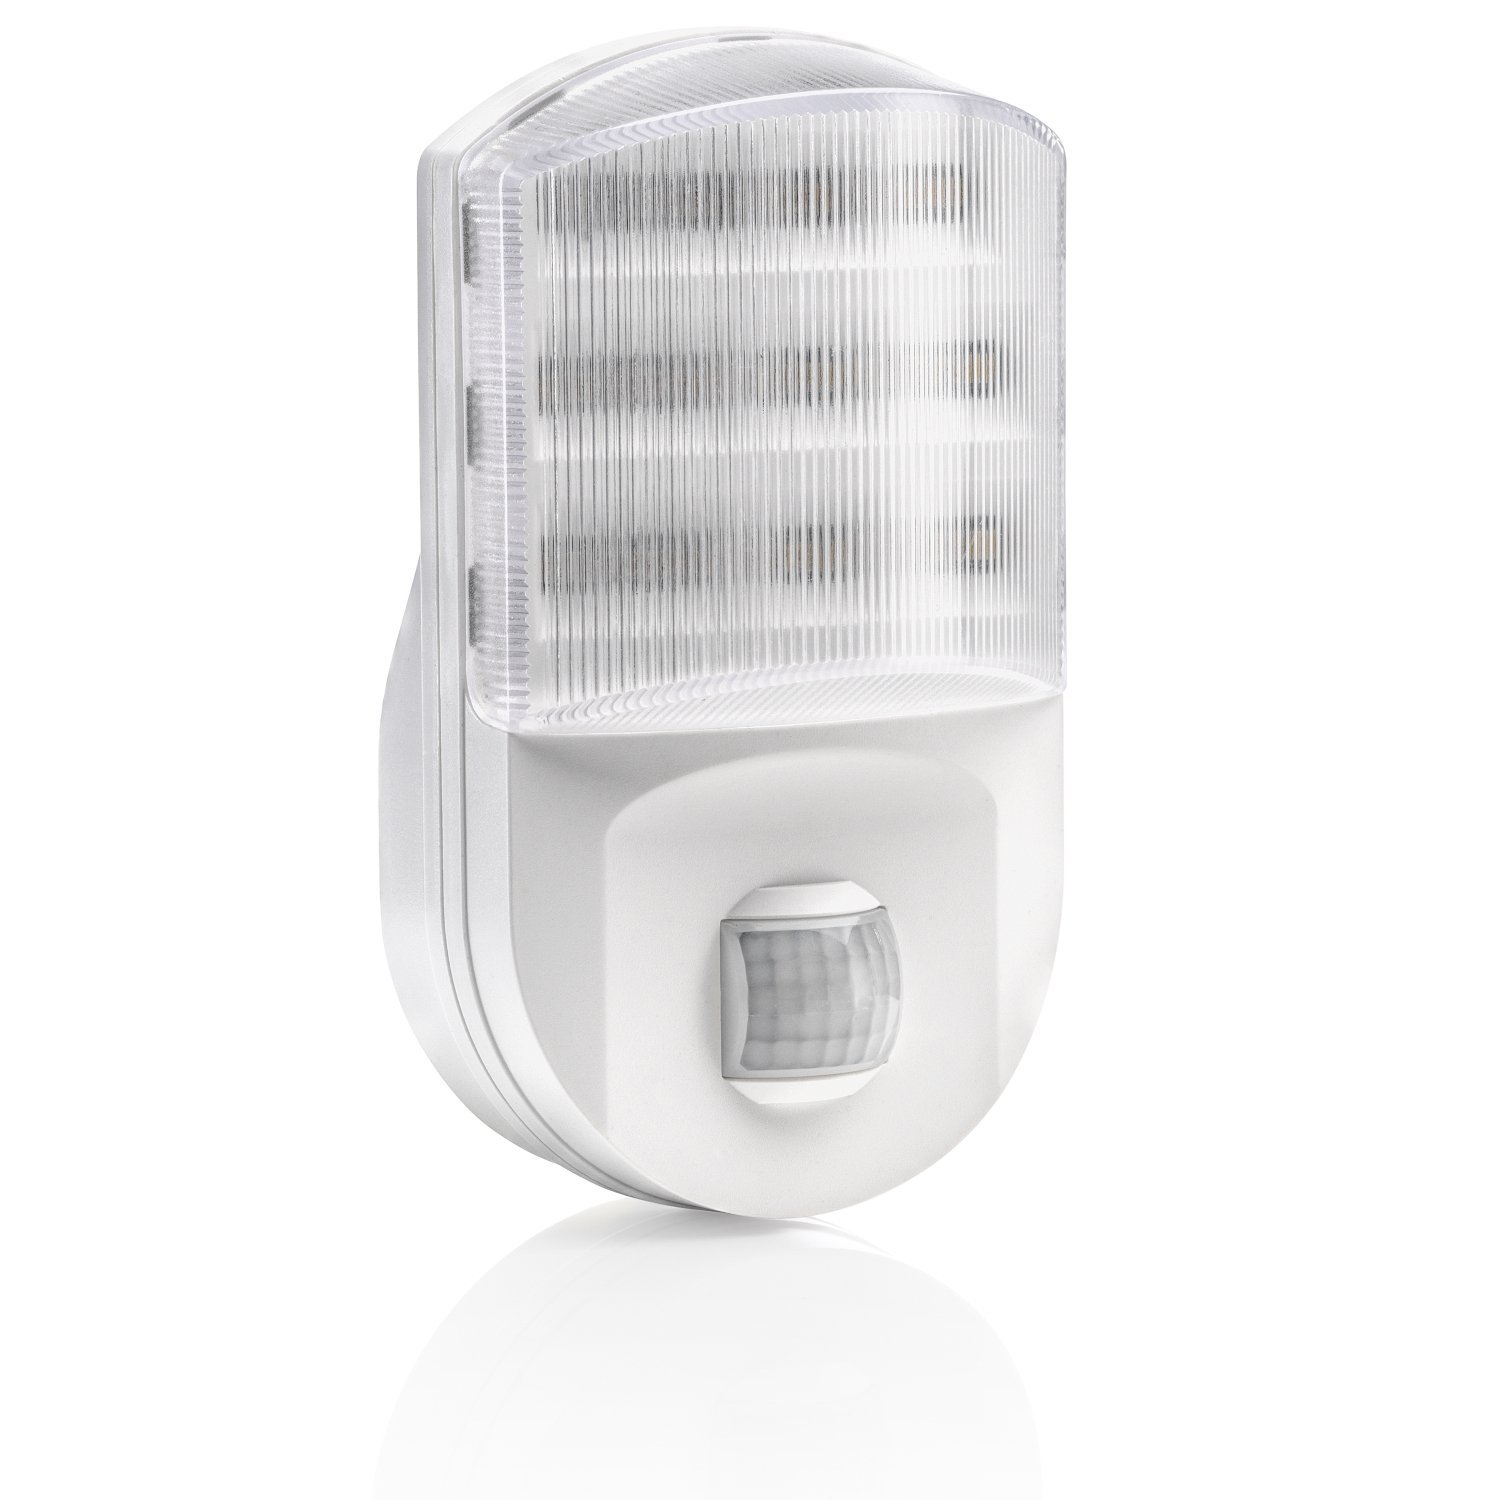 Auraglow Super Bright Plug In PIR Motion Sensor Hallway Living Aid Safety LED Night Light [Energy Class A+]